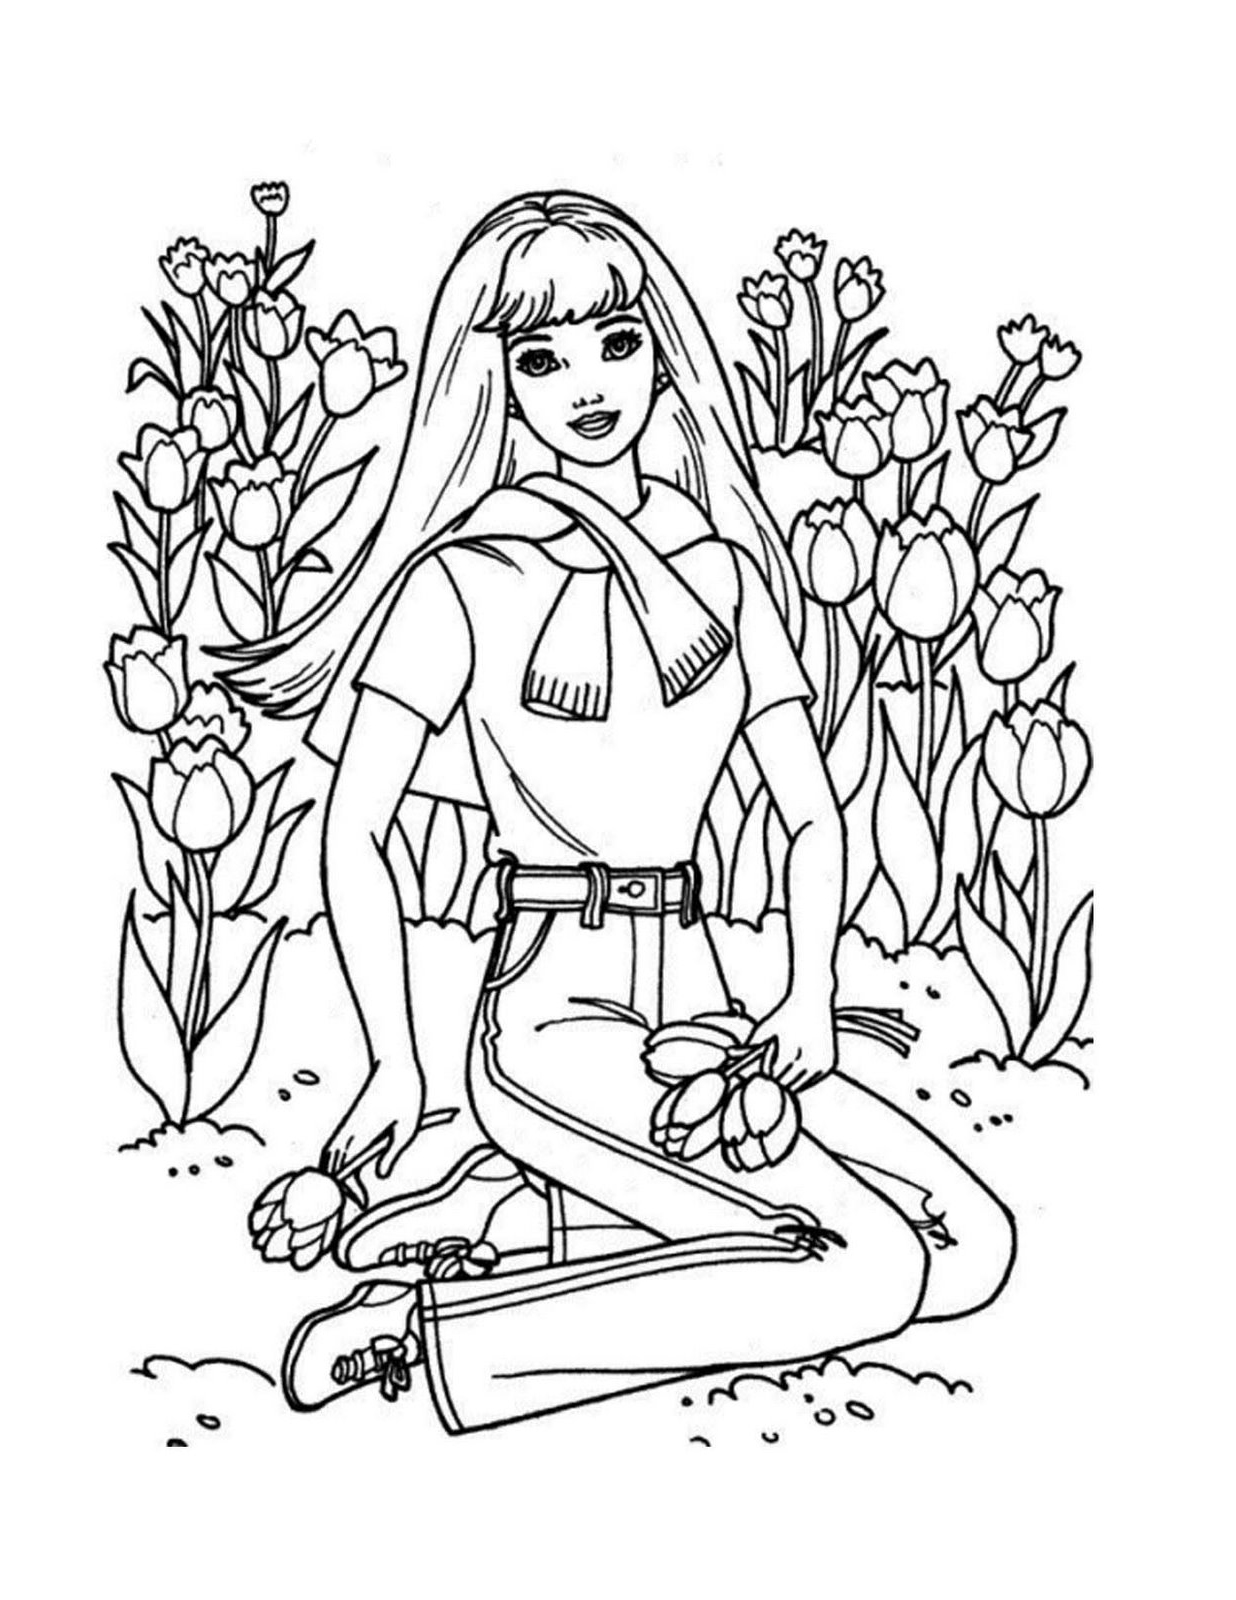 barbie colouring in picture barbie 20 coloringcolorcom in barbie picture colouring